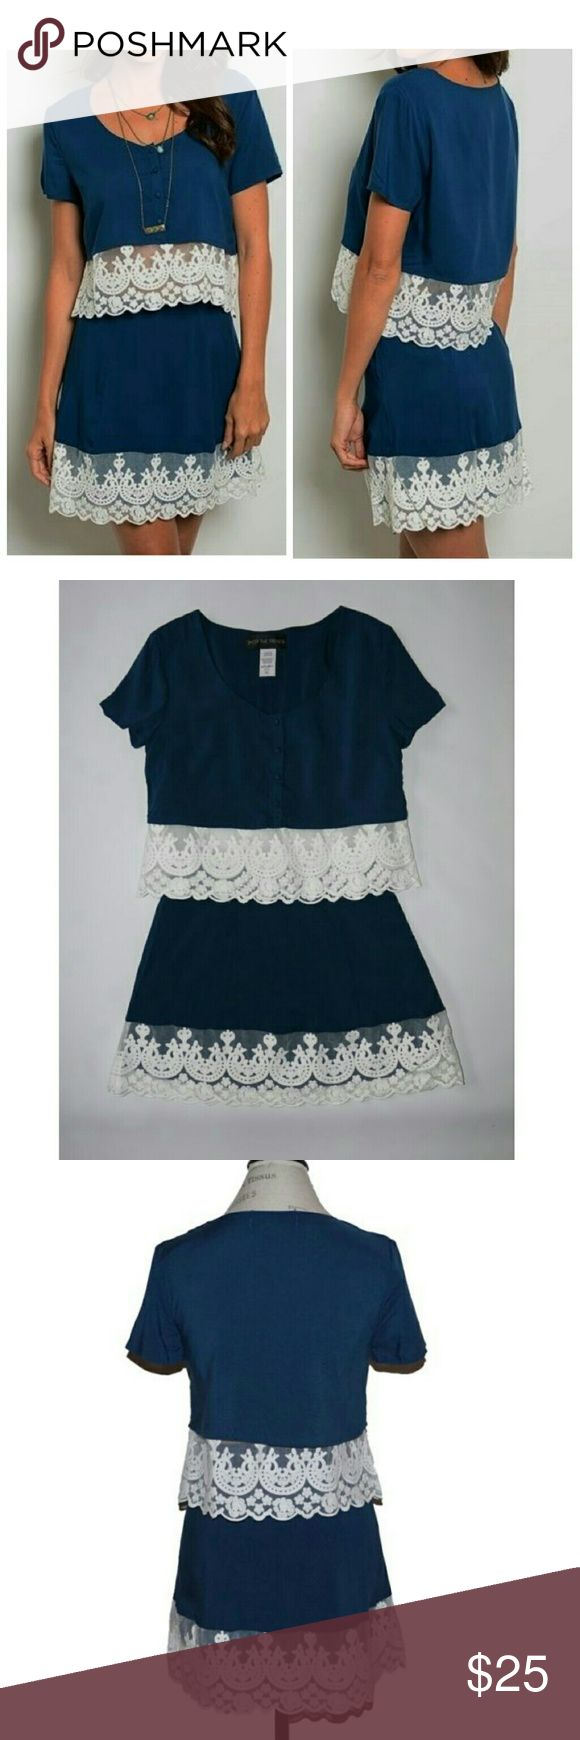 Lace hem skirt set blue white size medium Size m Boutique  Skirts Skirt Sets